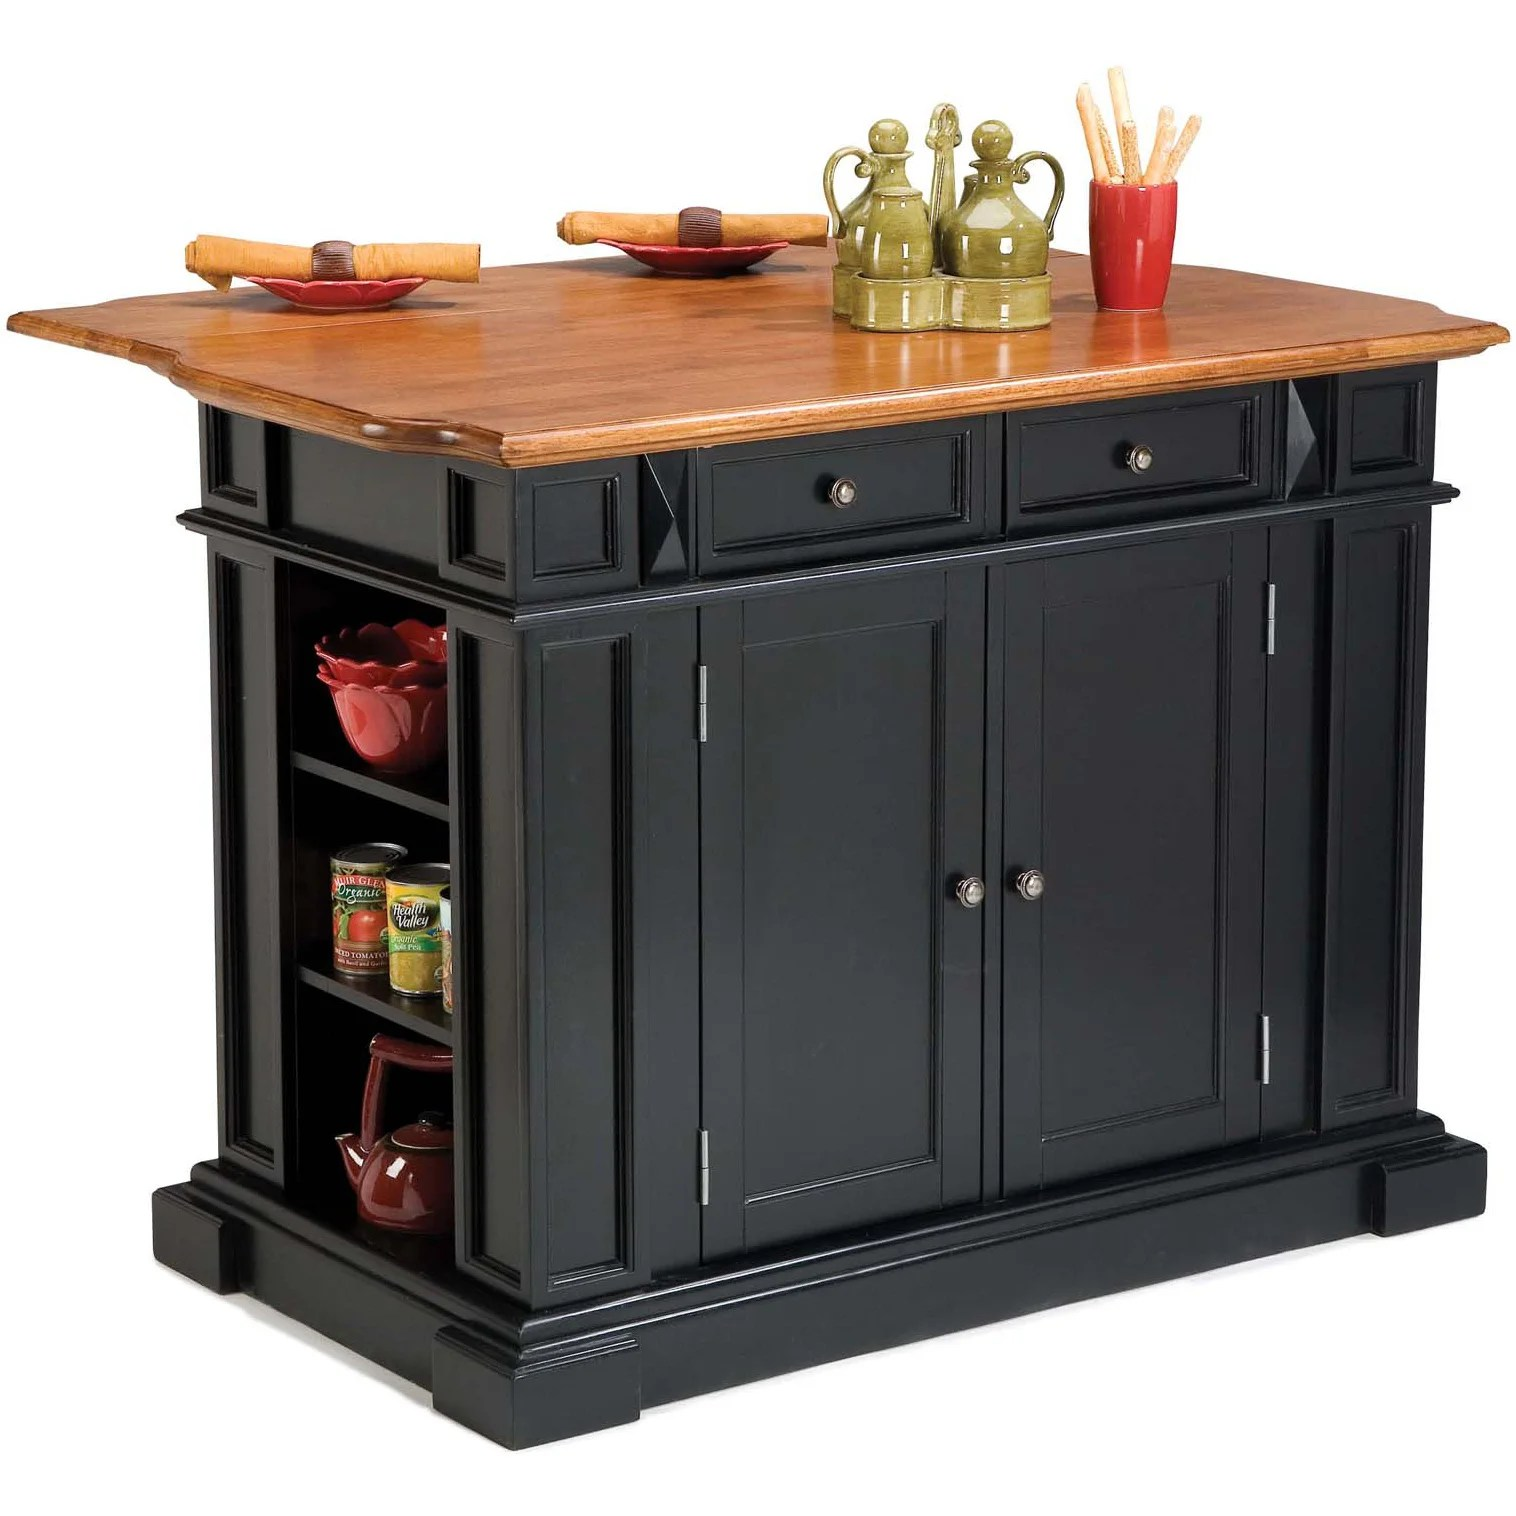 Black Island Kitchen Copper Grove Warwick Black Distressed Oak Kitchen Island